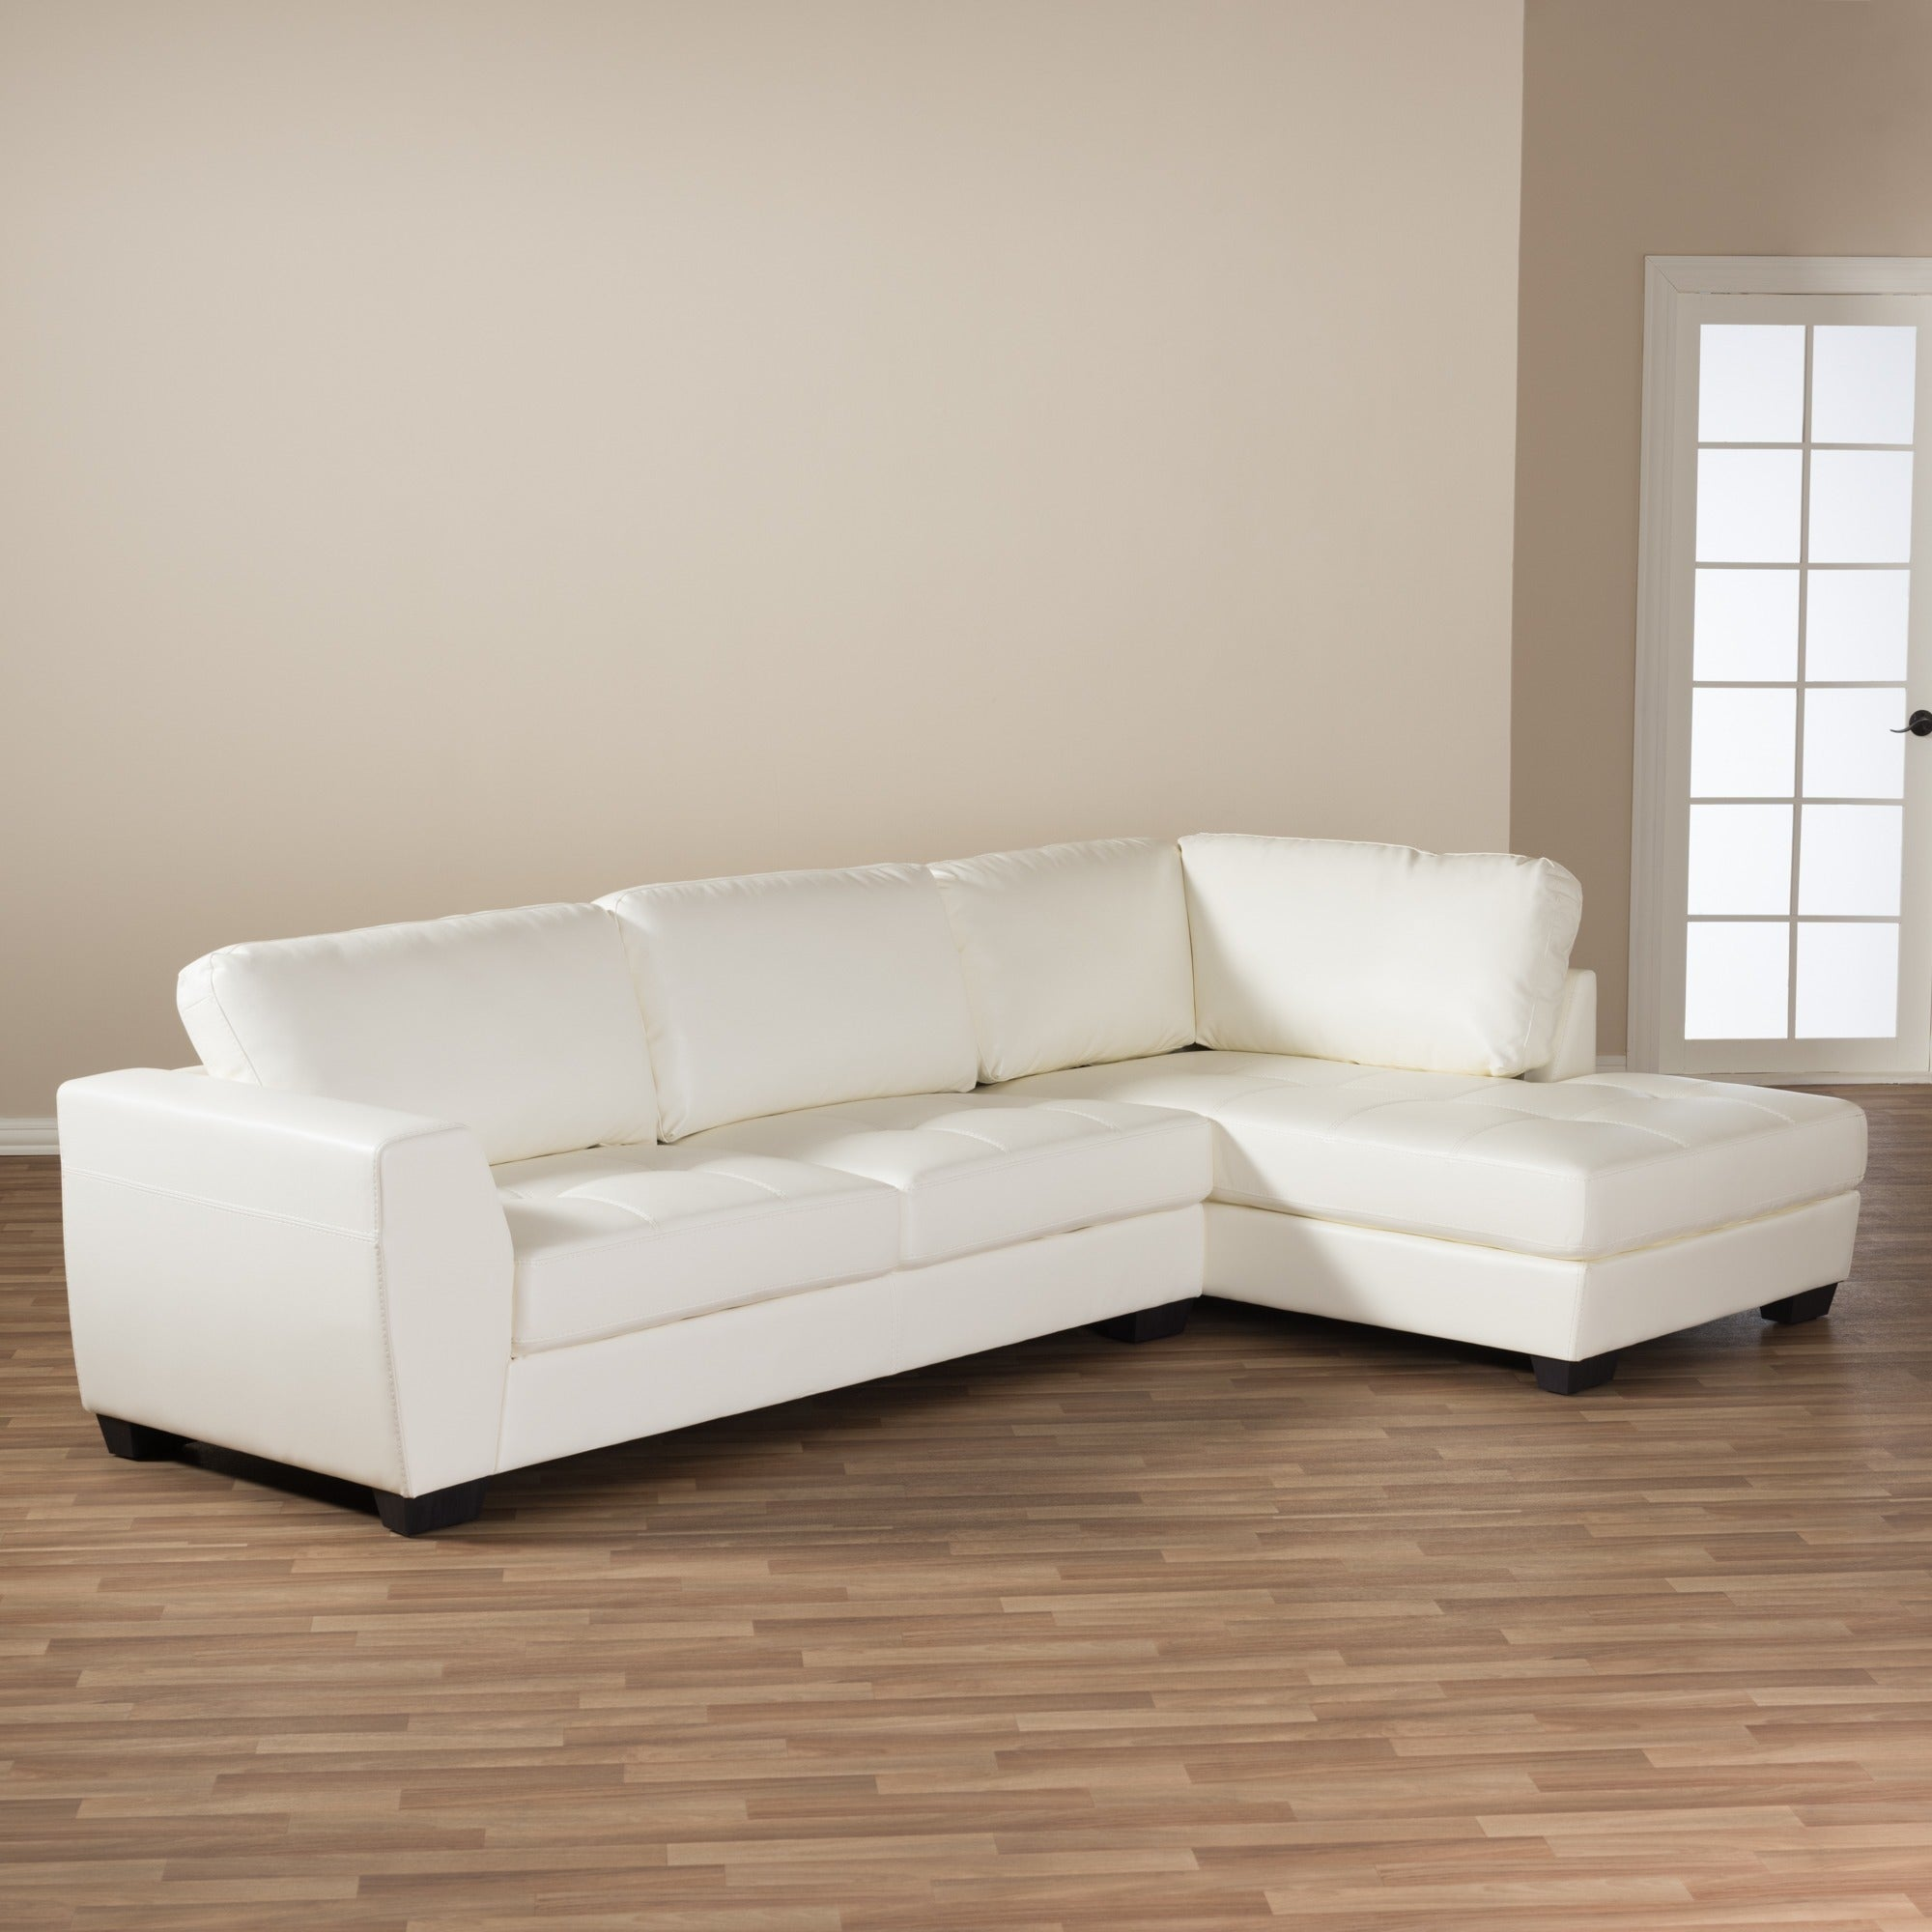 Orland White Leather Modern Sectional Sofa Set With Right Facing Chaise